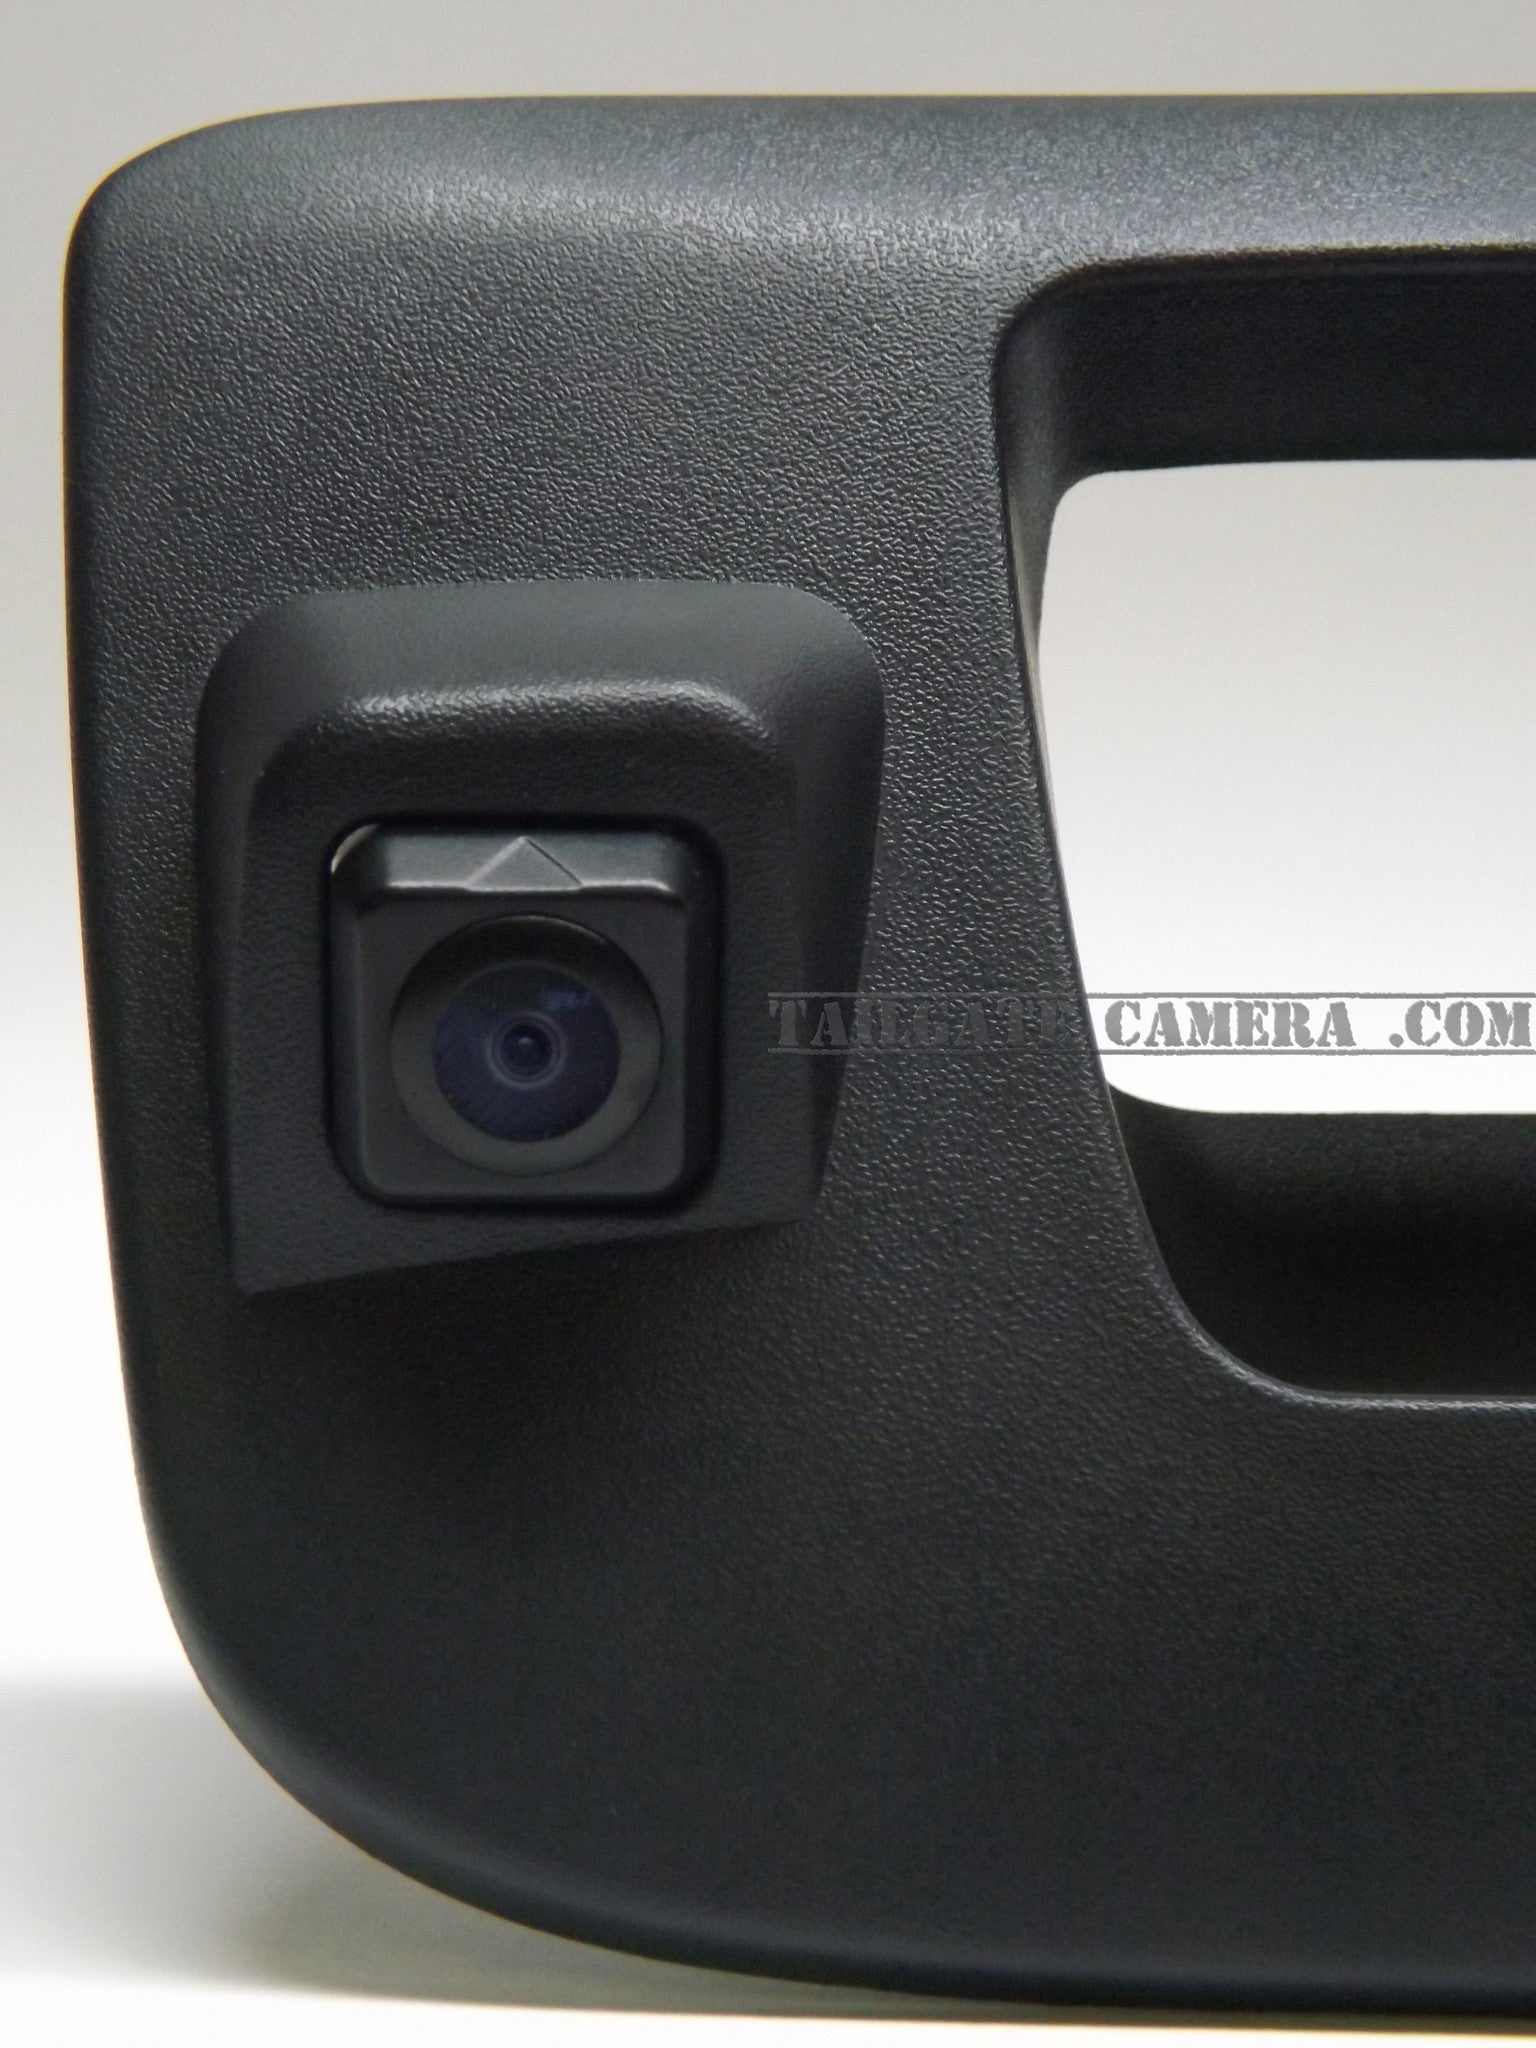 BACK UP CAMERA FOR GMC SIERRA CHEVY SILVERADO (2007-13) OE Fit Tailgate High REZ Night Vision with Parking Guidance Line